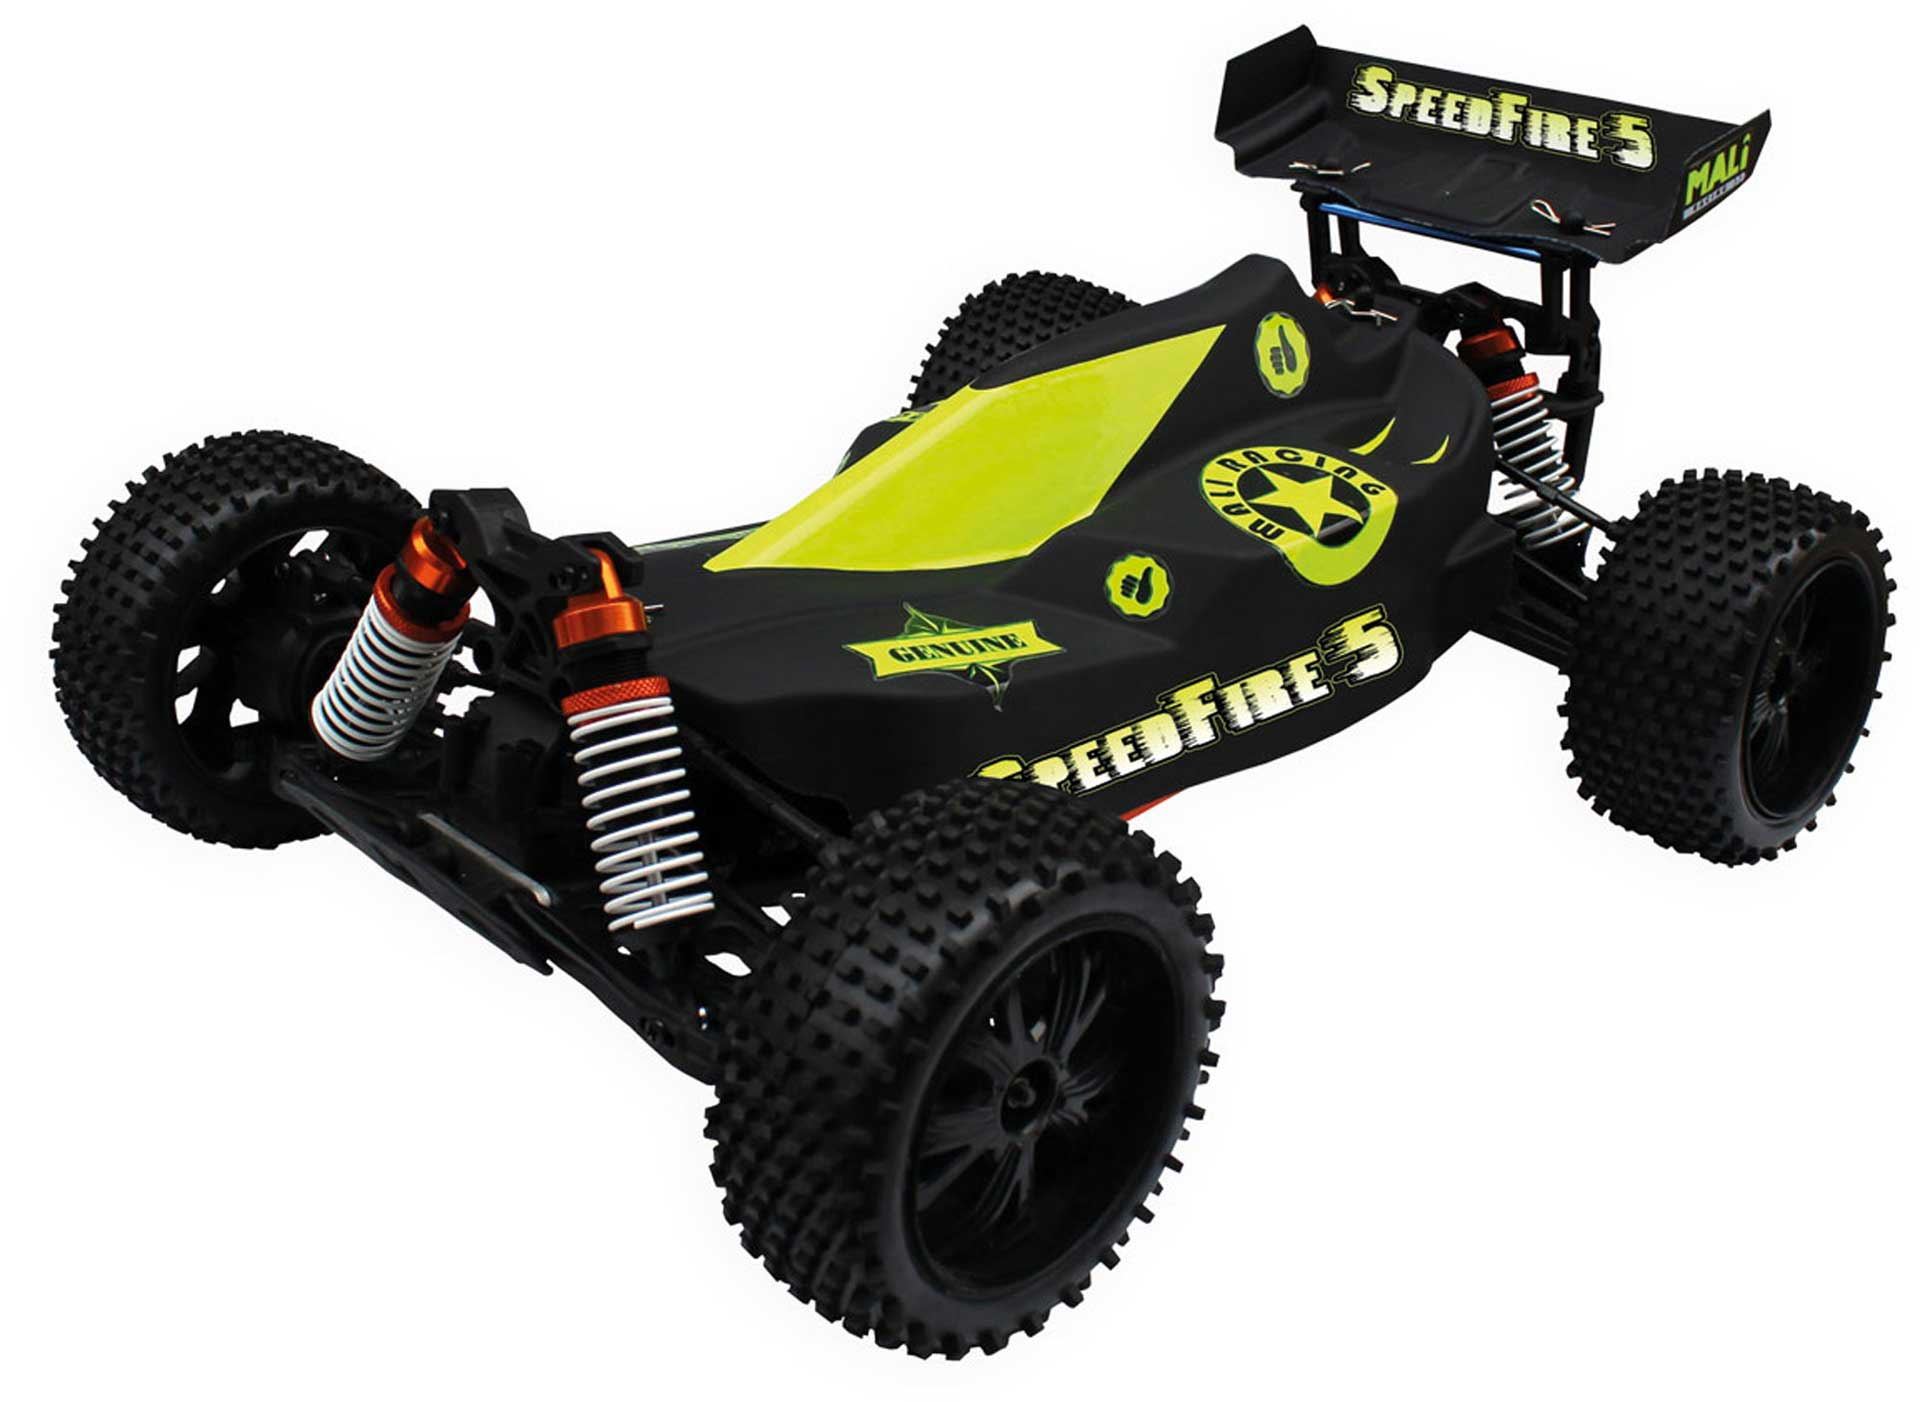 DRIVE & FLY MODELS SPEEDFIRE 5 BUGGY BRUSHED 1/10XL 4WD RTR